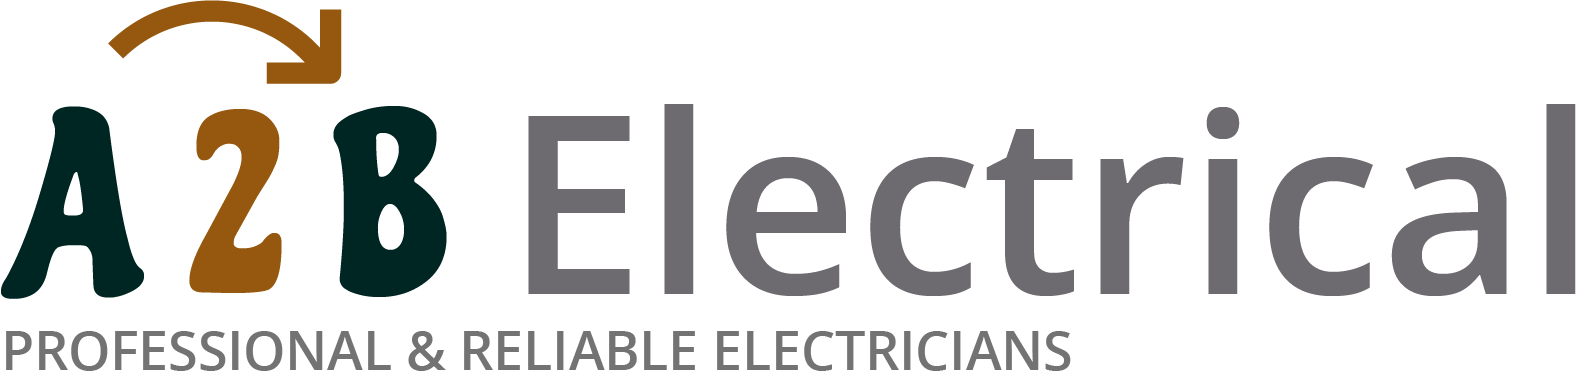 If you have electrical wiring problems in Pimlico, we can provide an electrician to have a look for you.